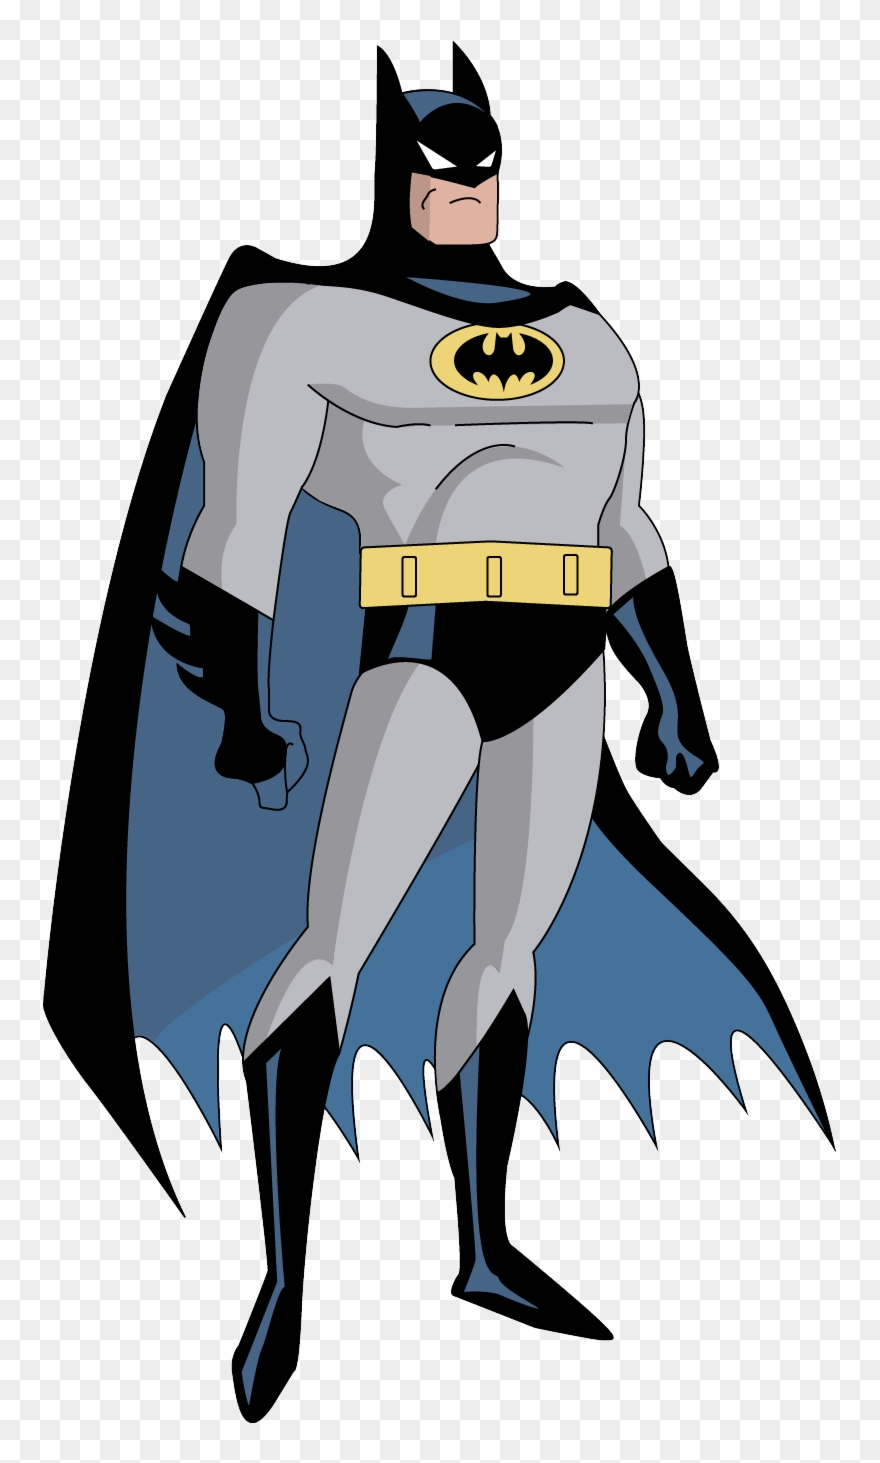 Batman the animated series clipart svg freeuse library Batman Clip Art Batman No Background Clipart - Batman Animated ... svg freeuse library